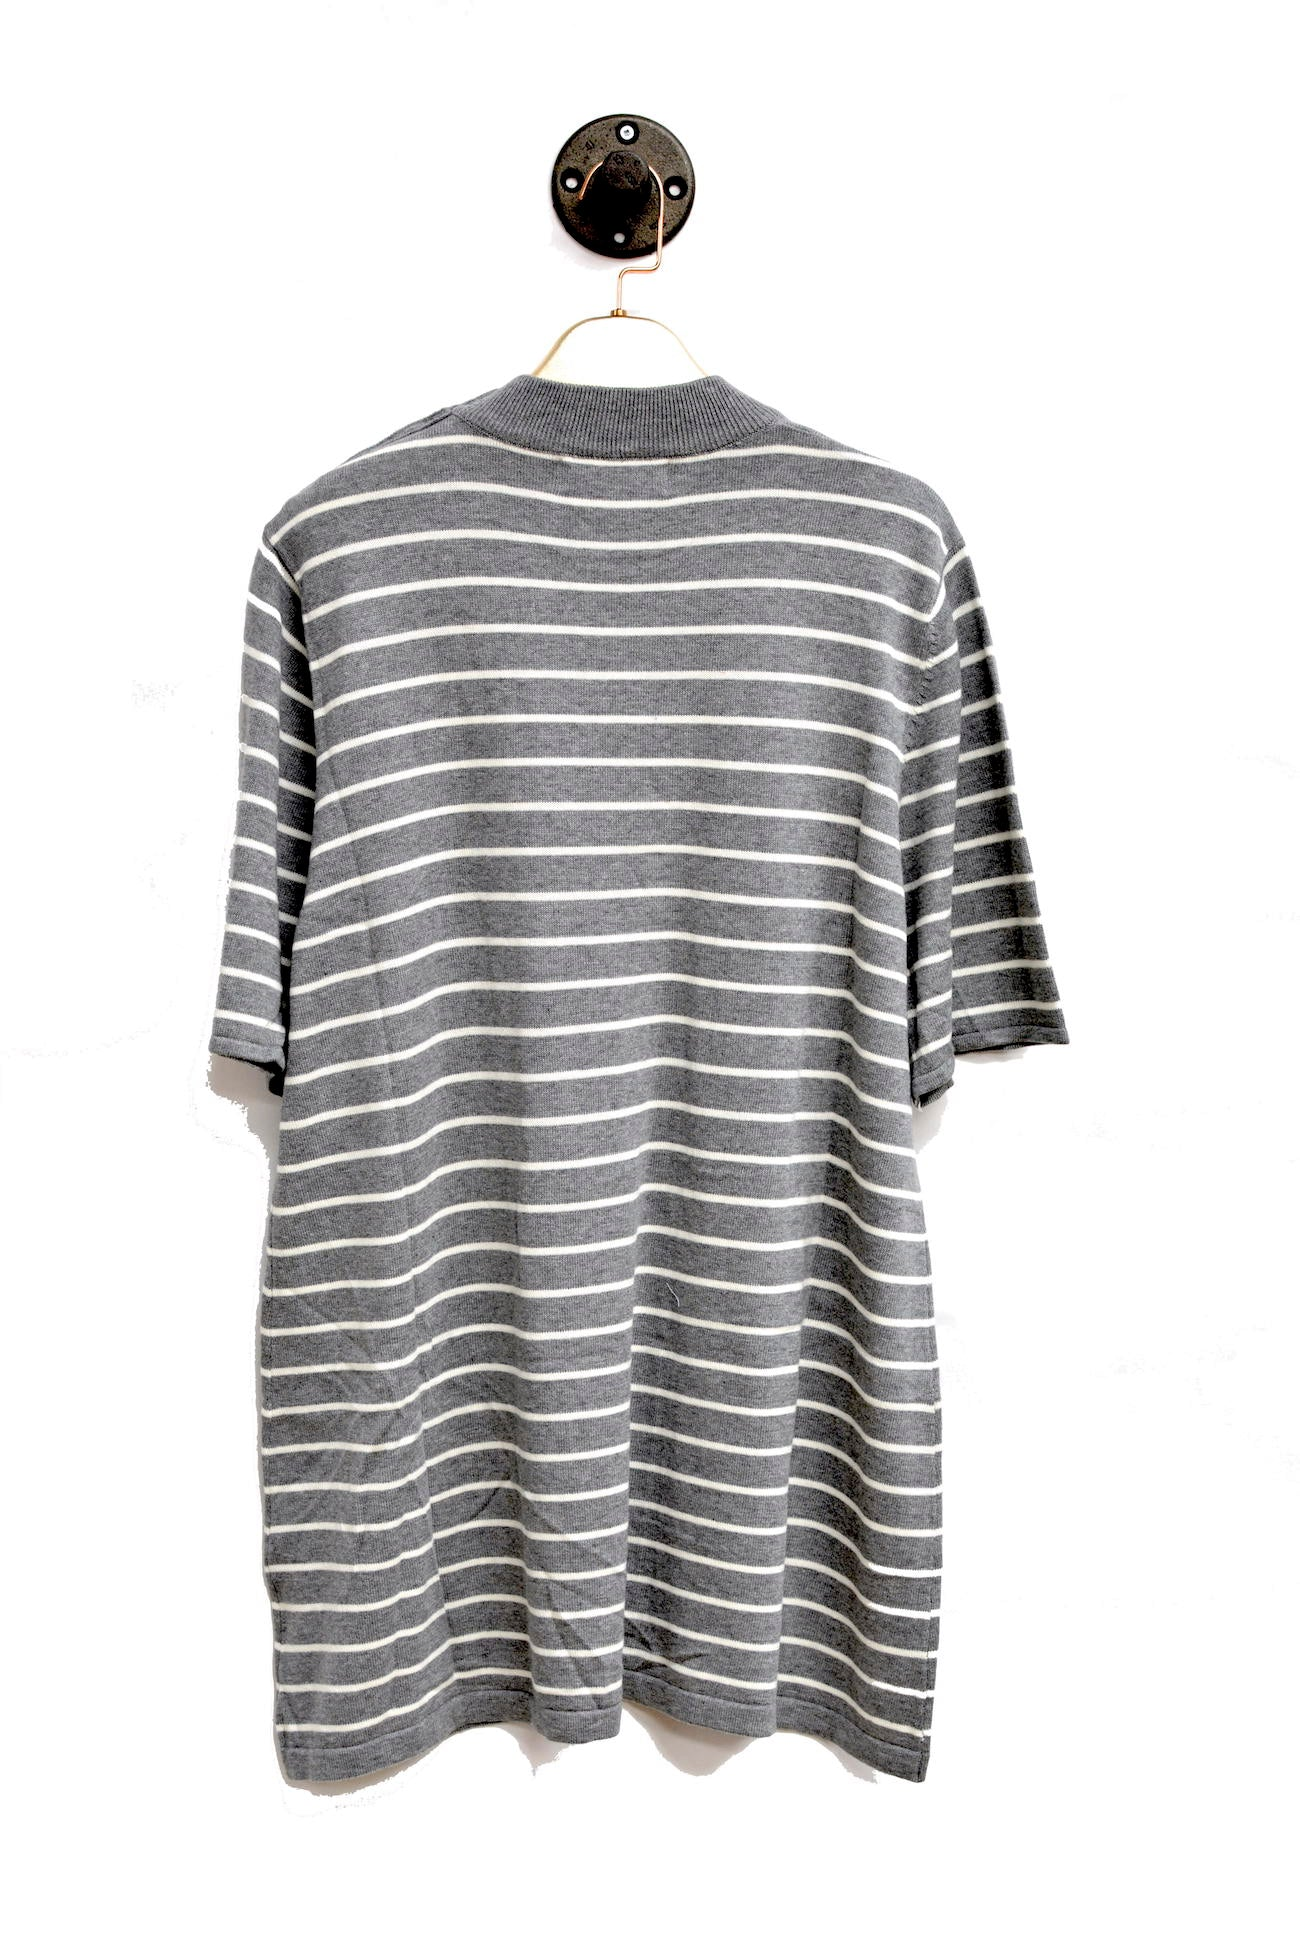 Grey Horizontal Striped Sweater Dress With Round Neck and buttoned shoulder